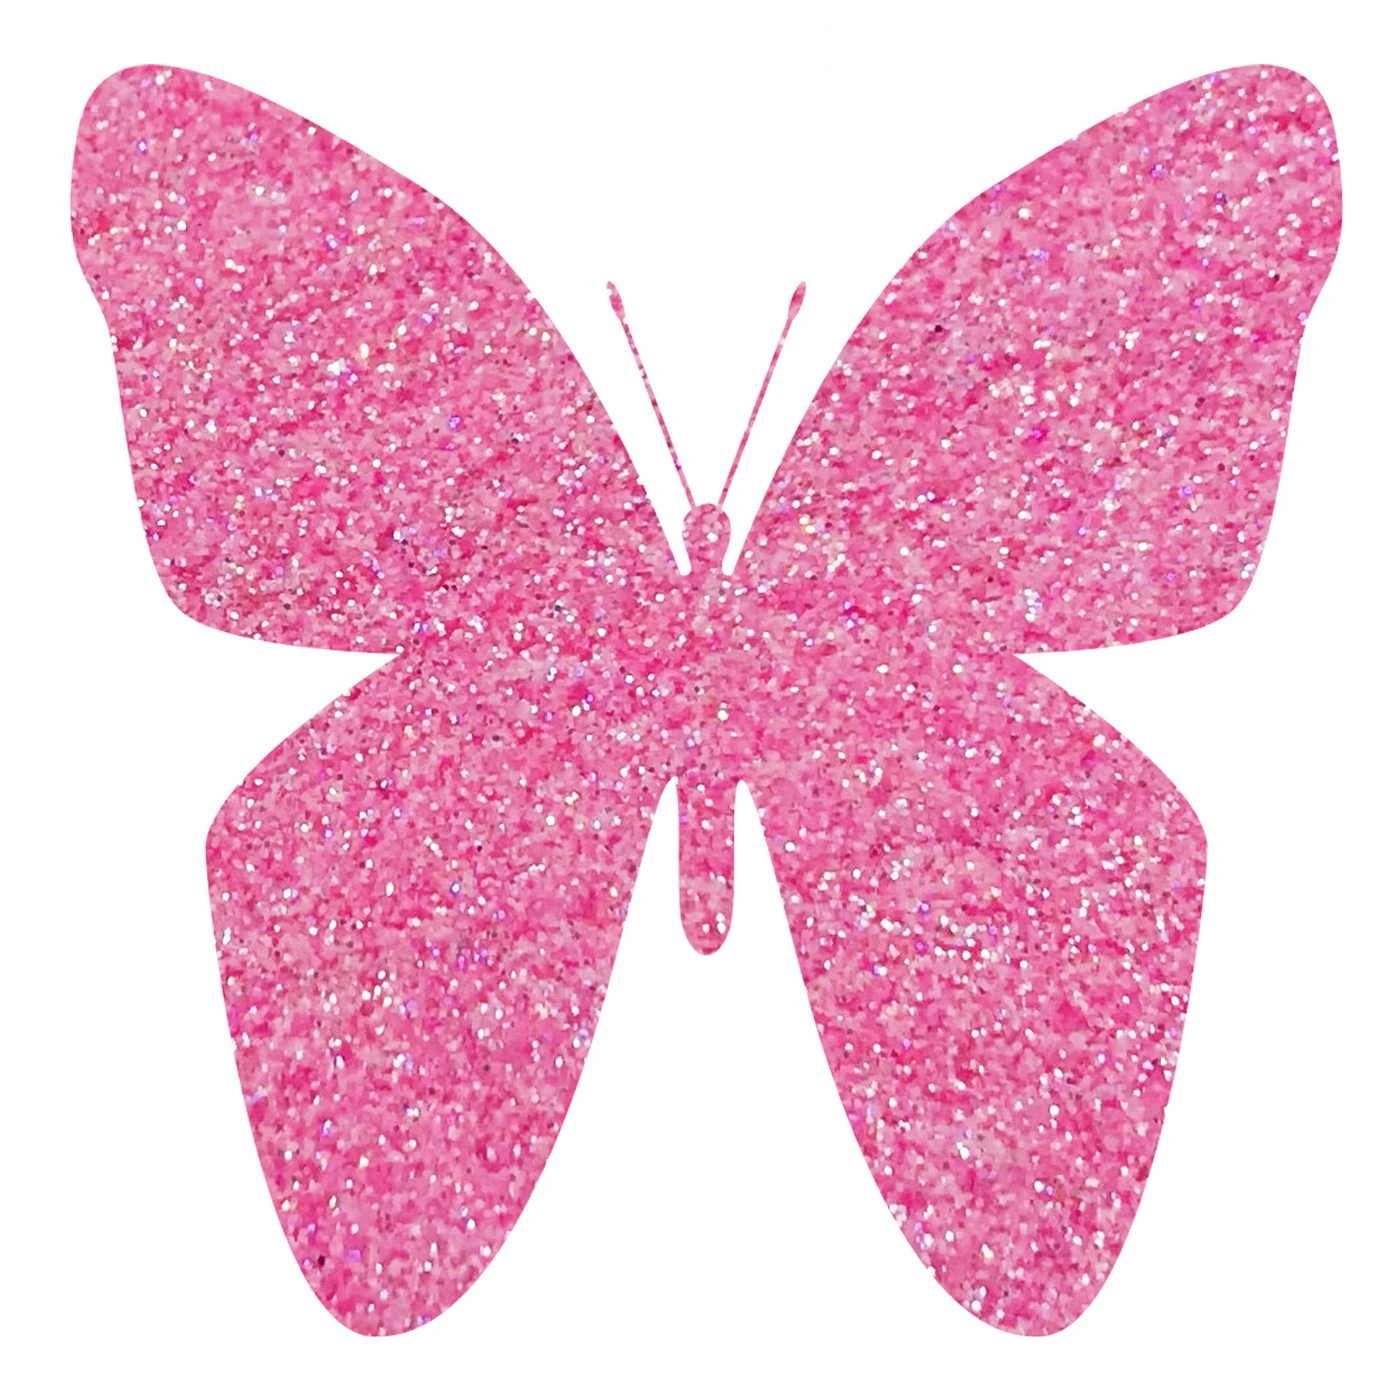 Ultrafine Glitter Bubblegum, G1088